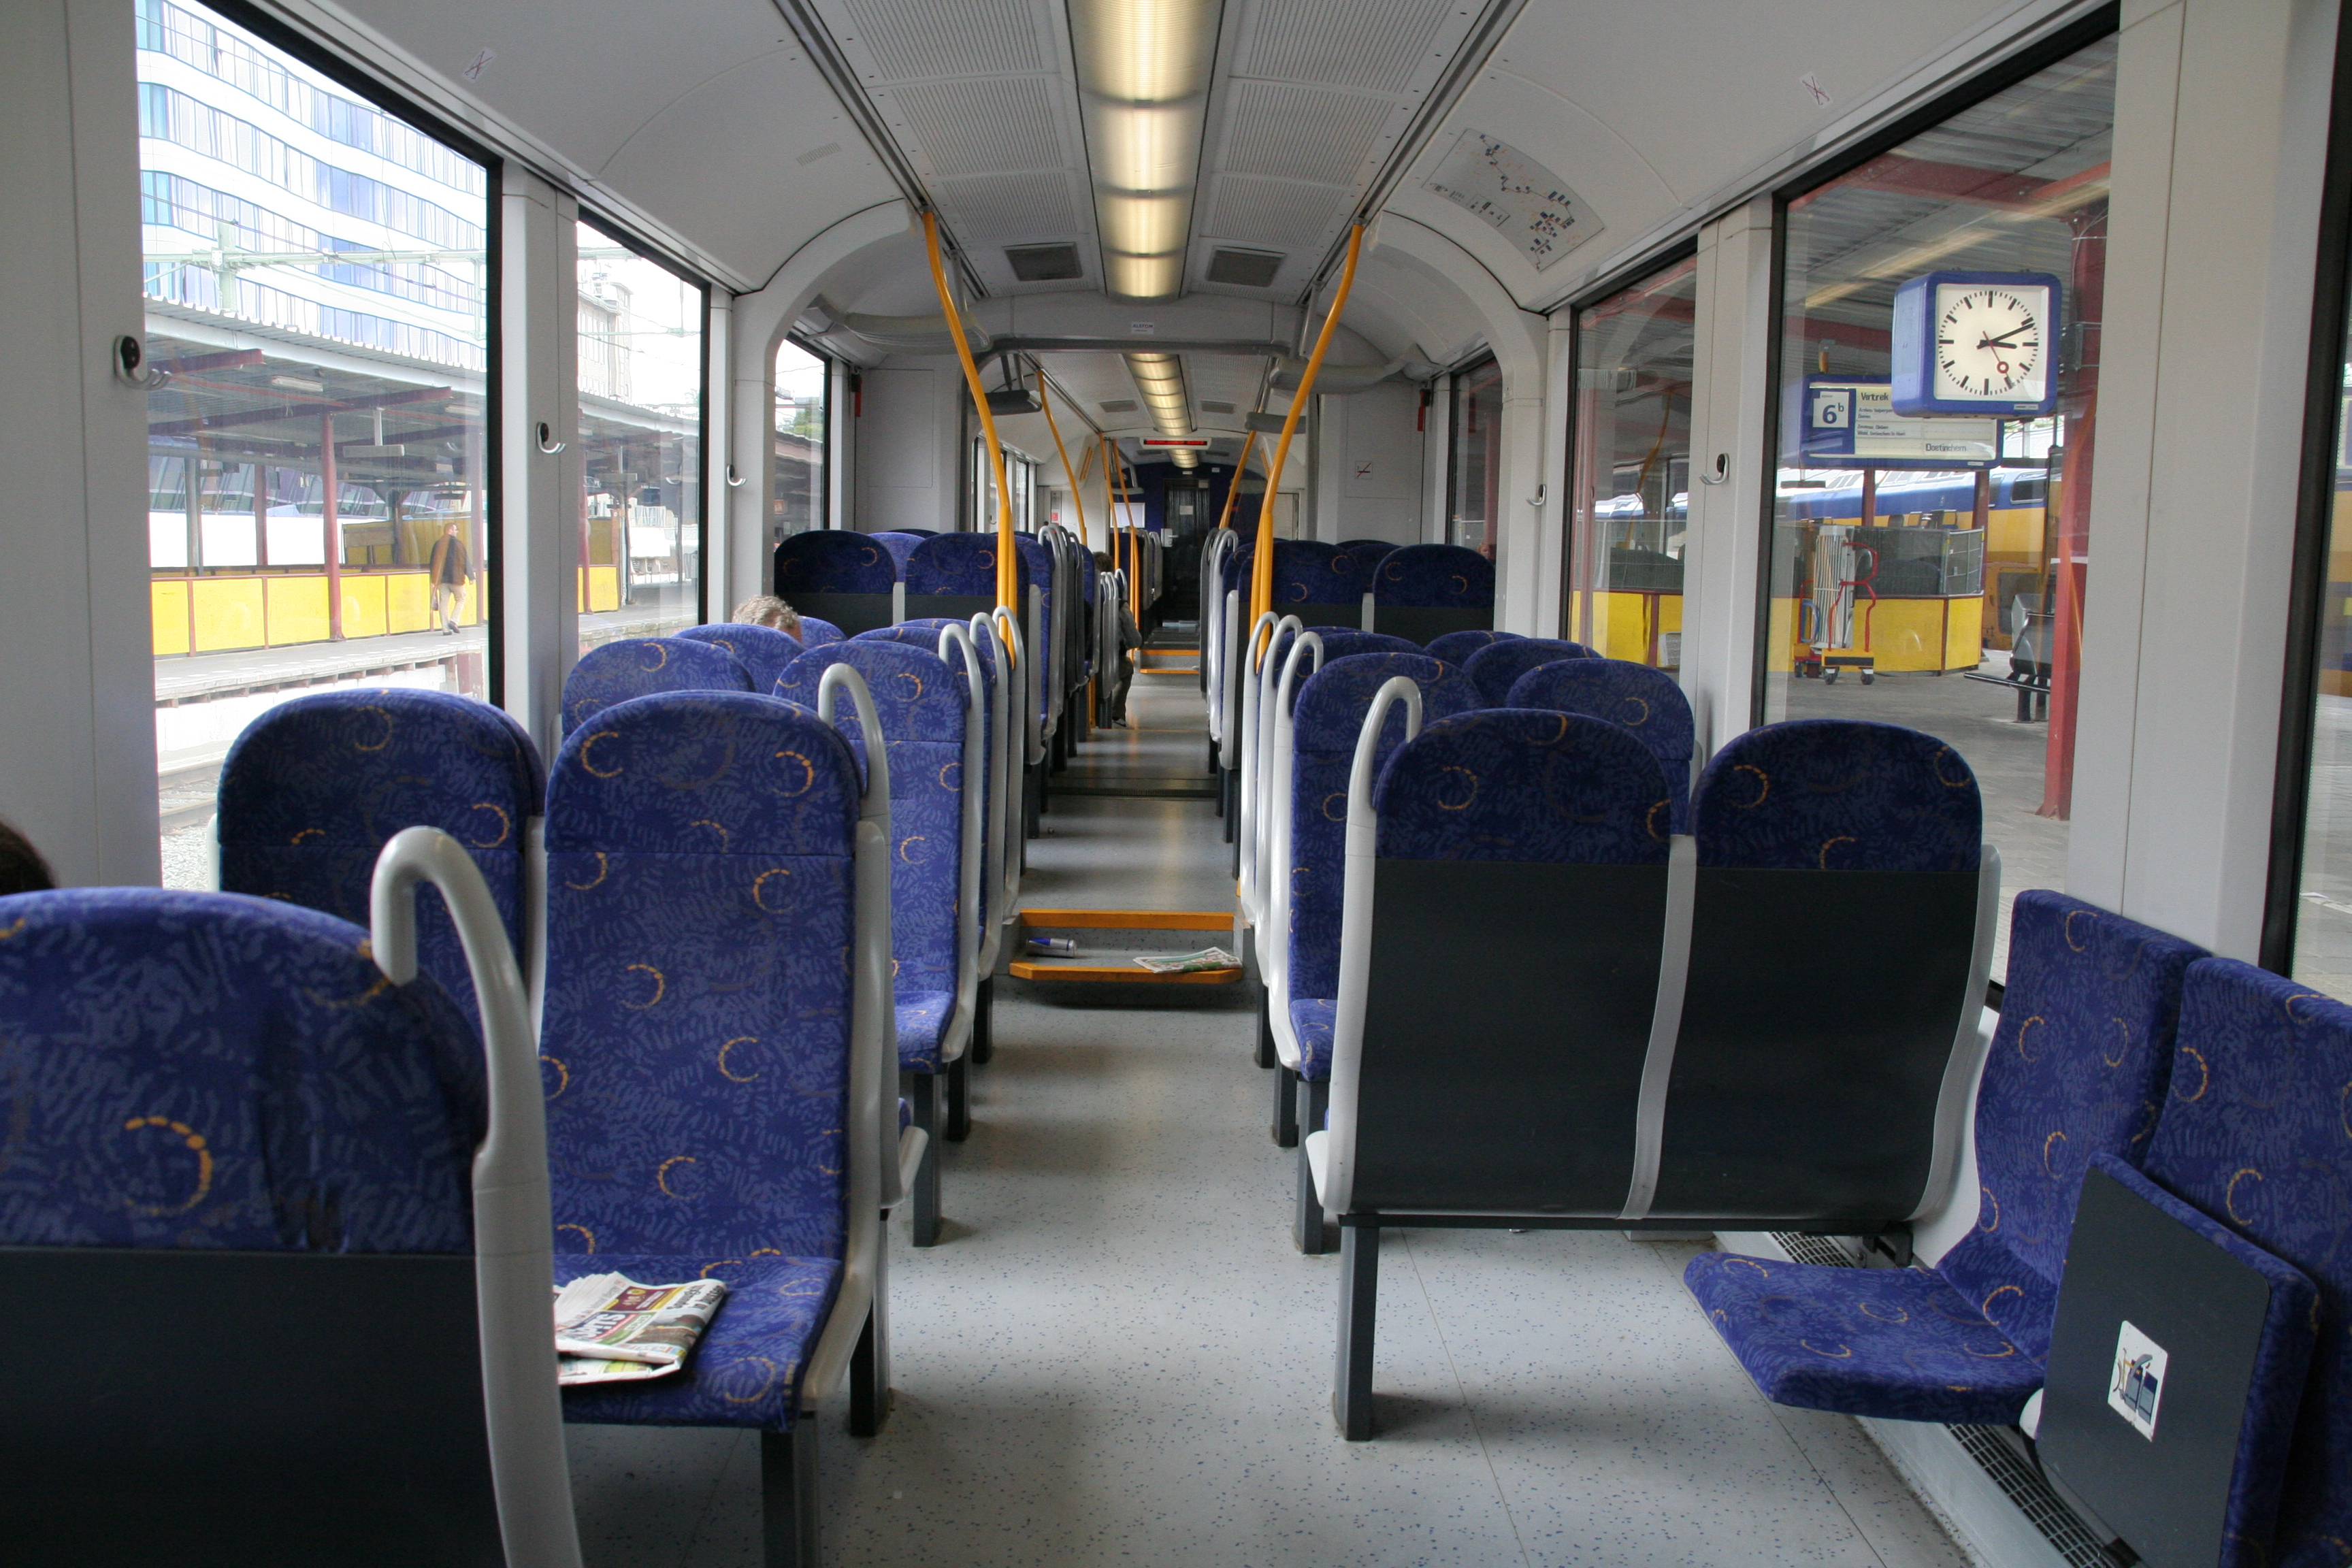 Ns Icr Interieur File Interieur Syntus Lint Jpg Wikimedia Commons